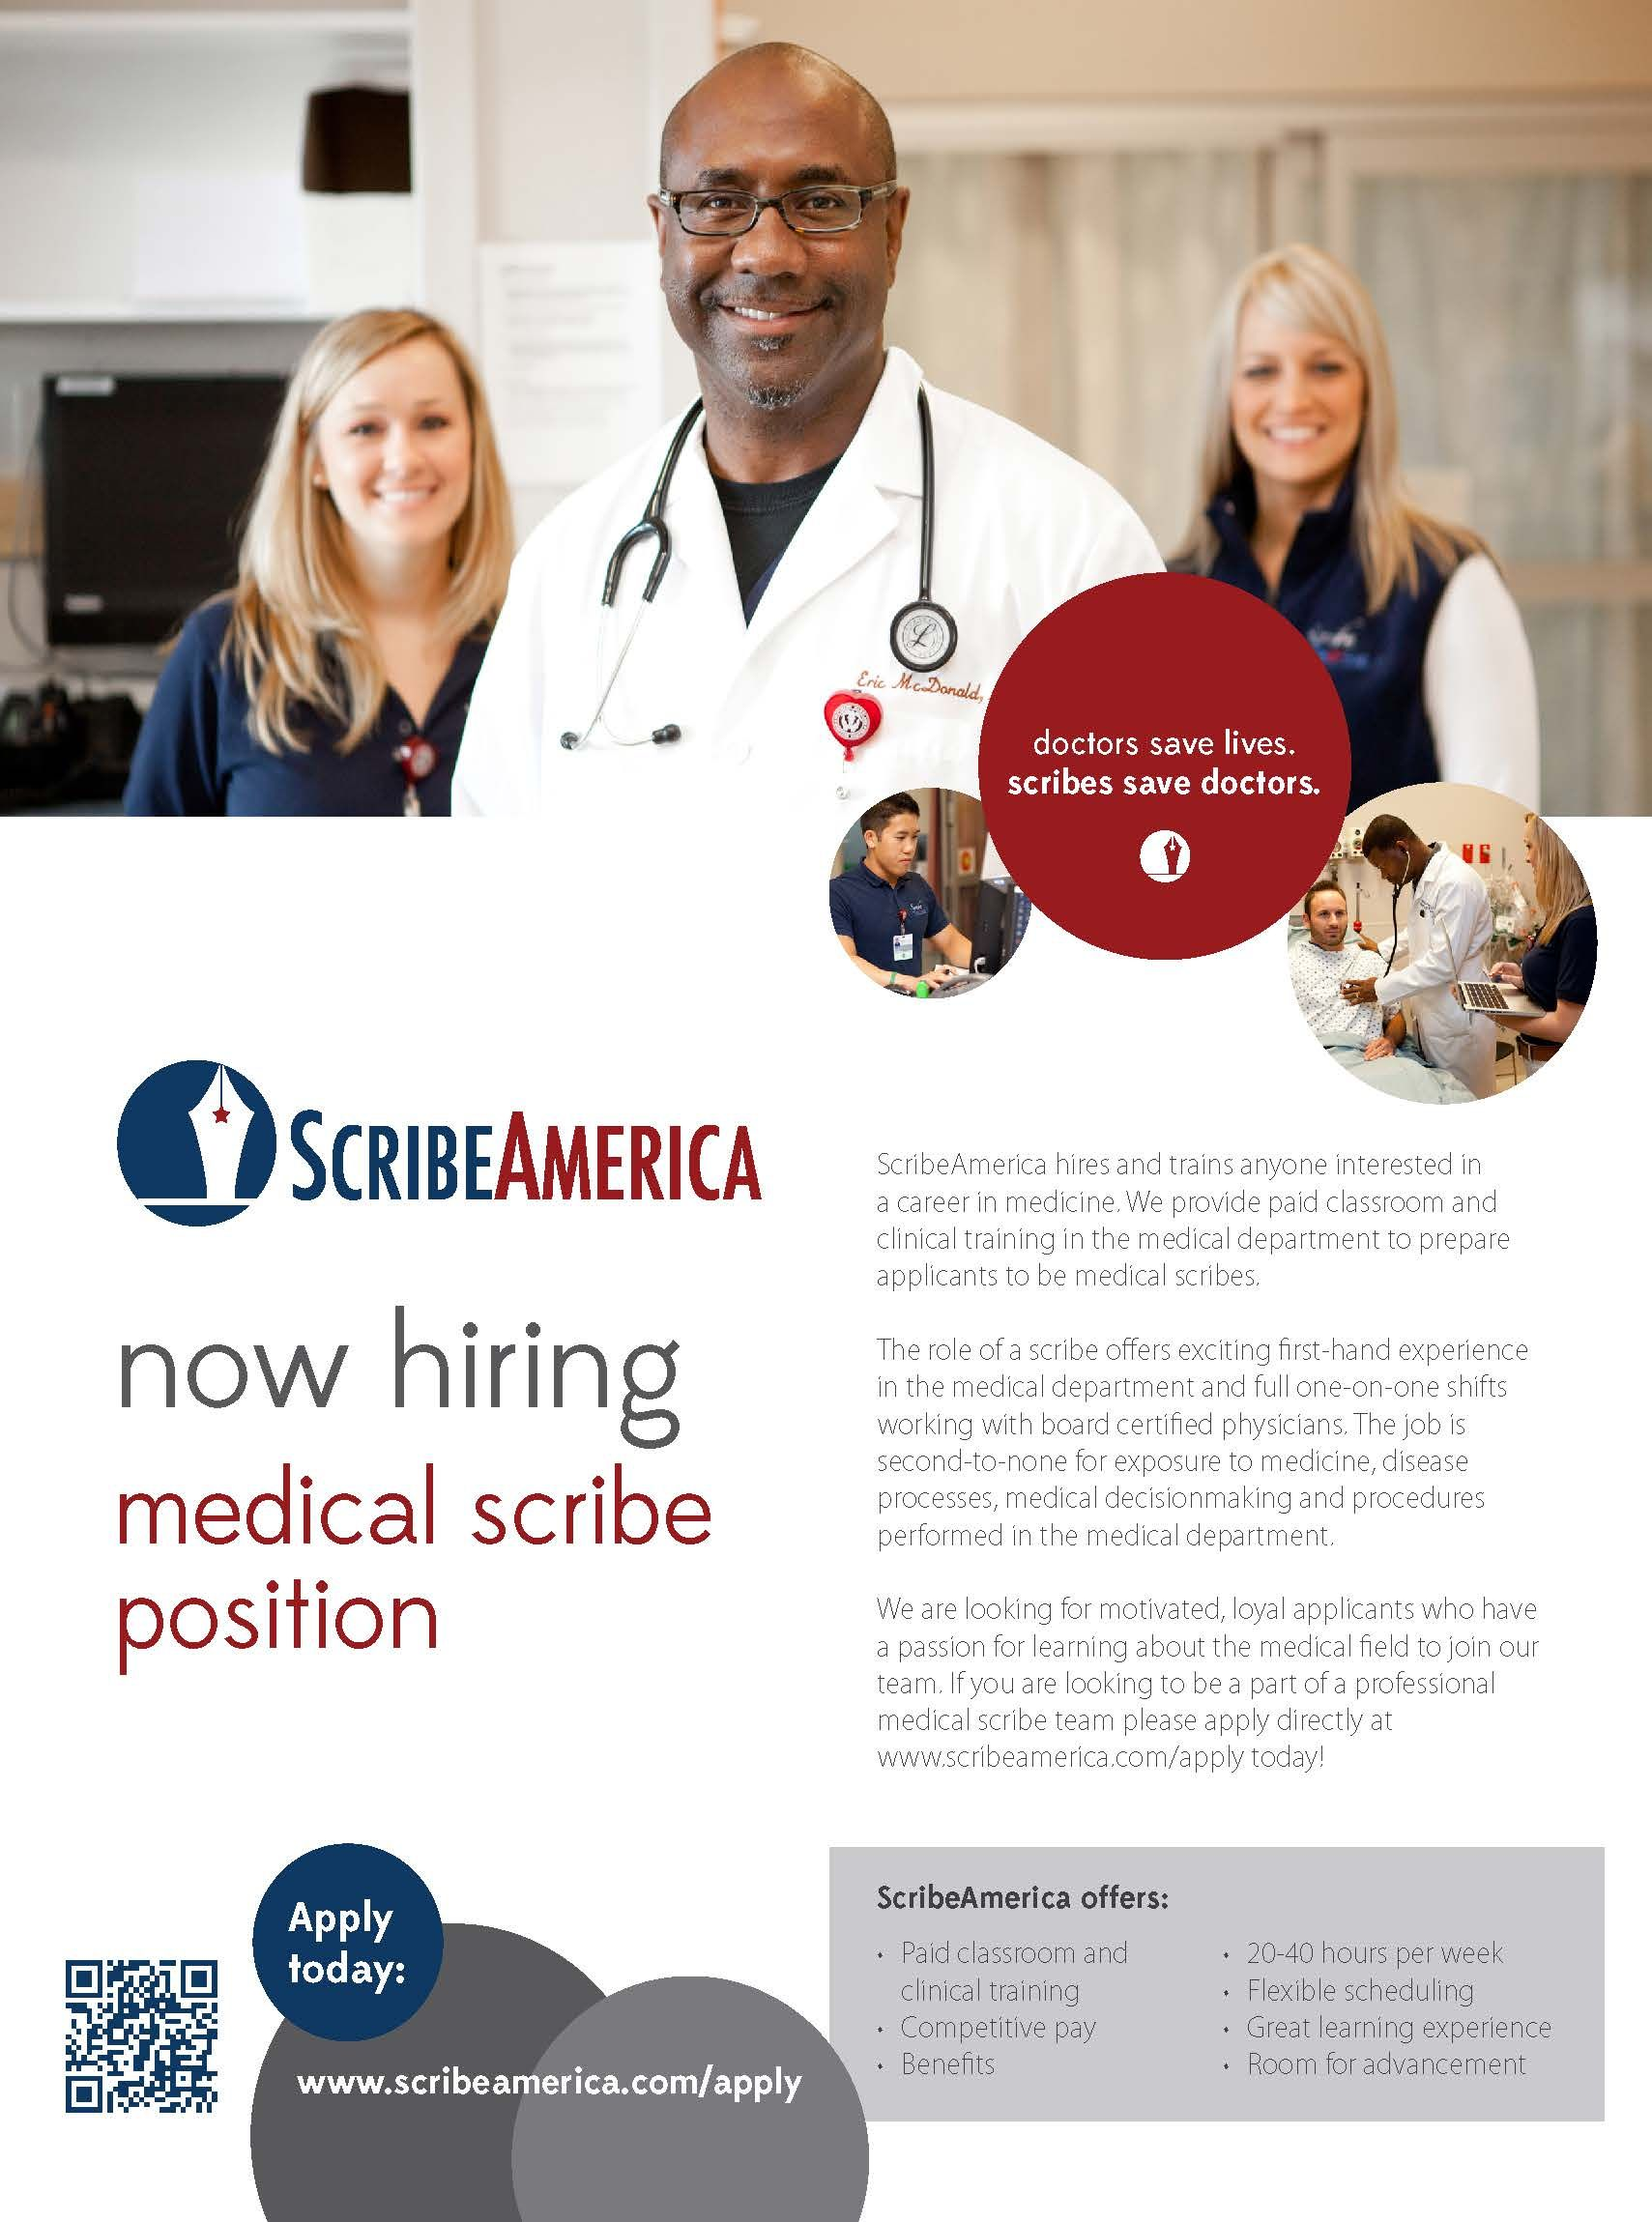 come visit scribeamerica at their information table in